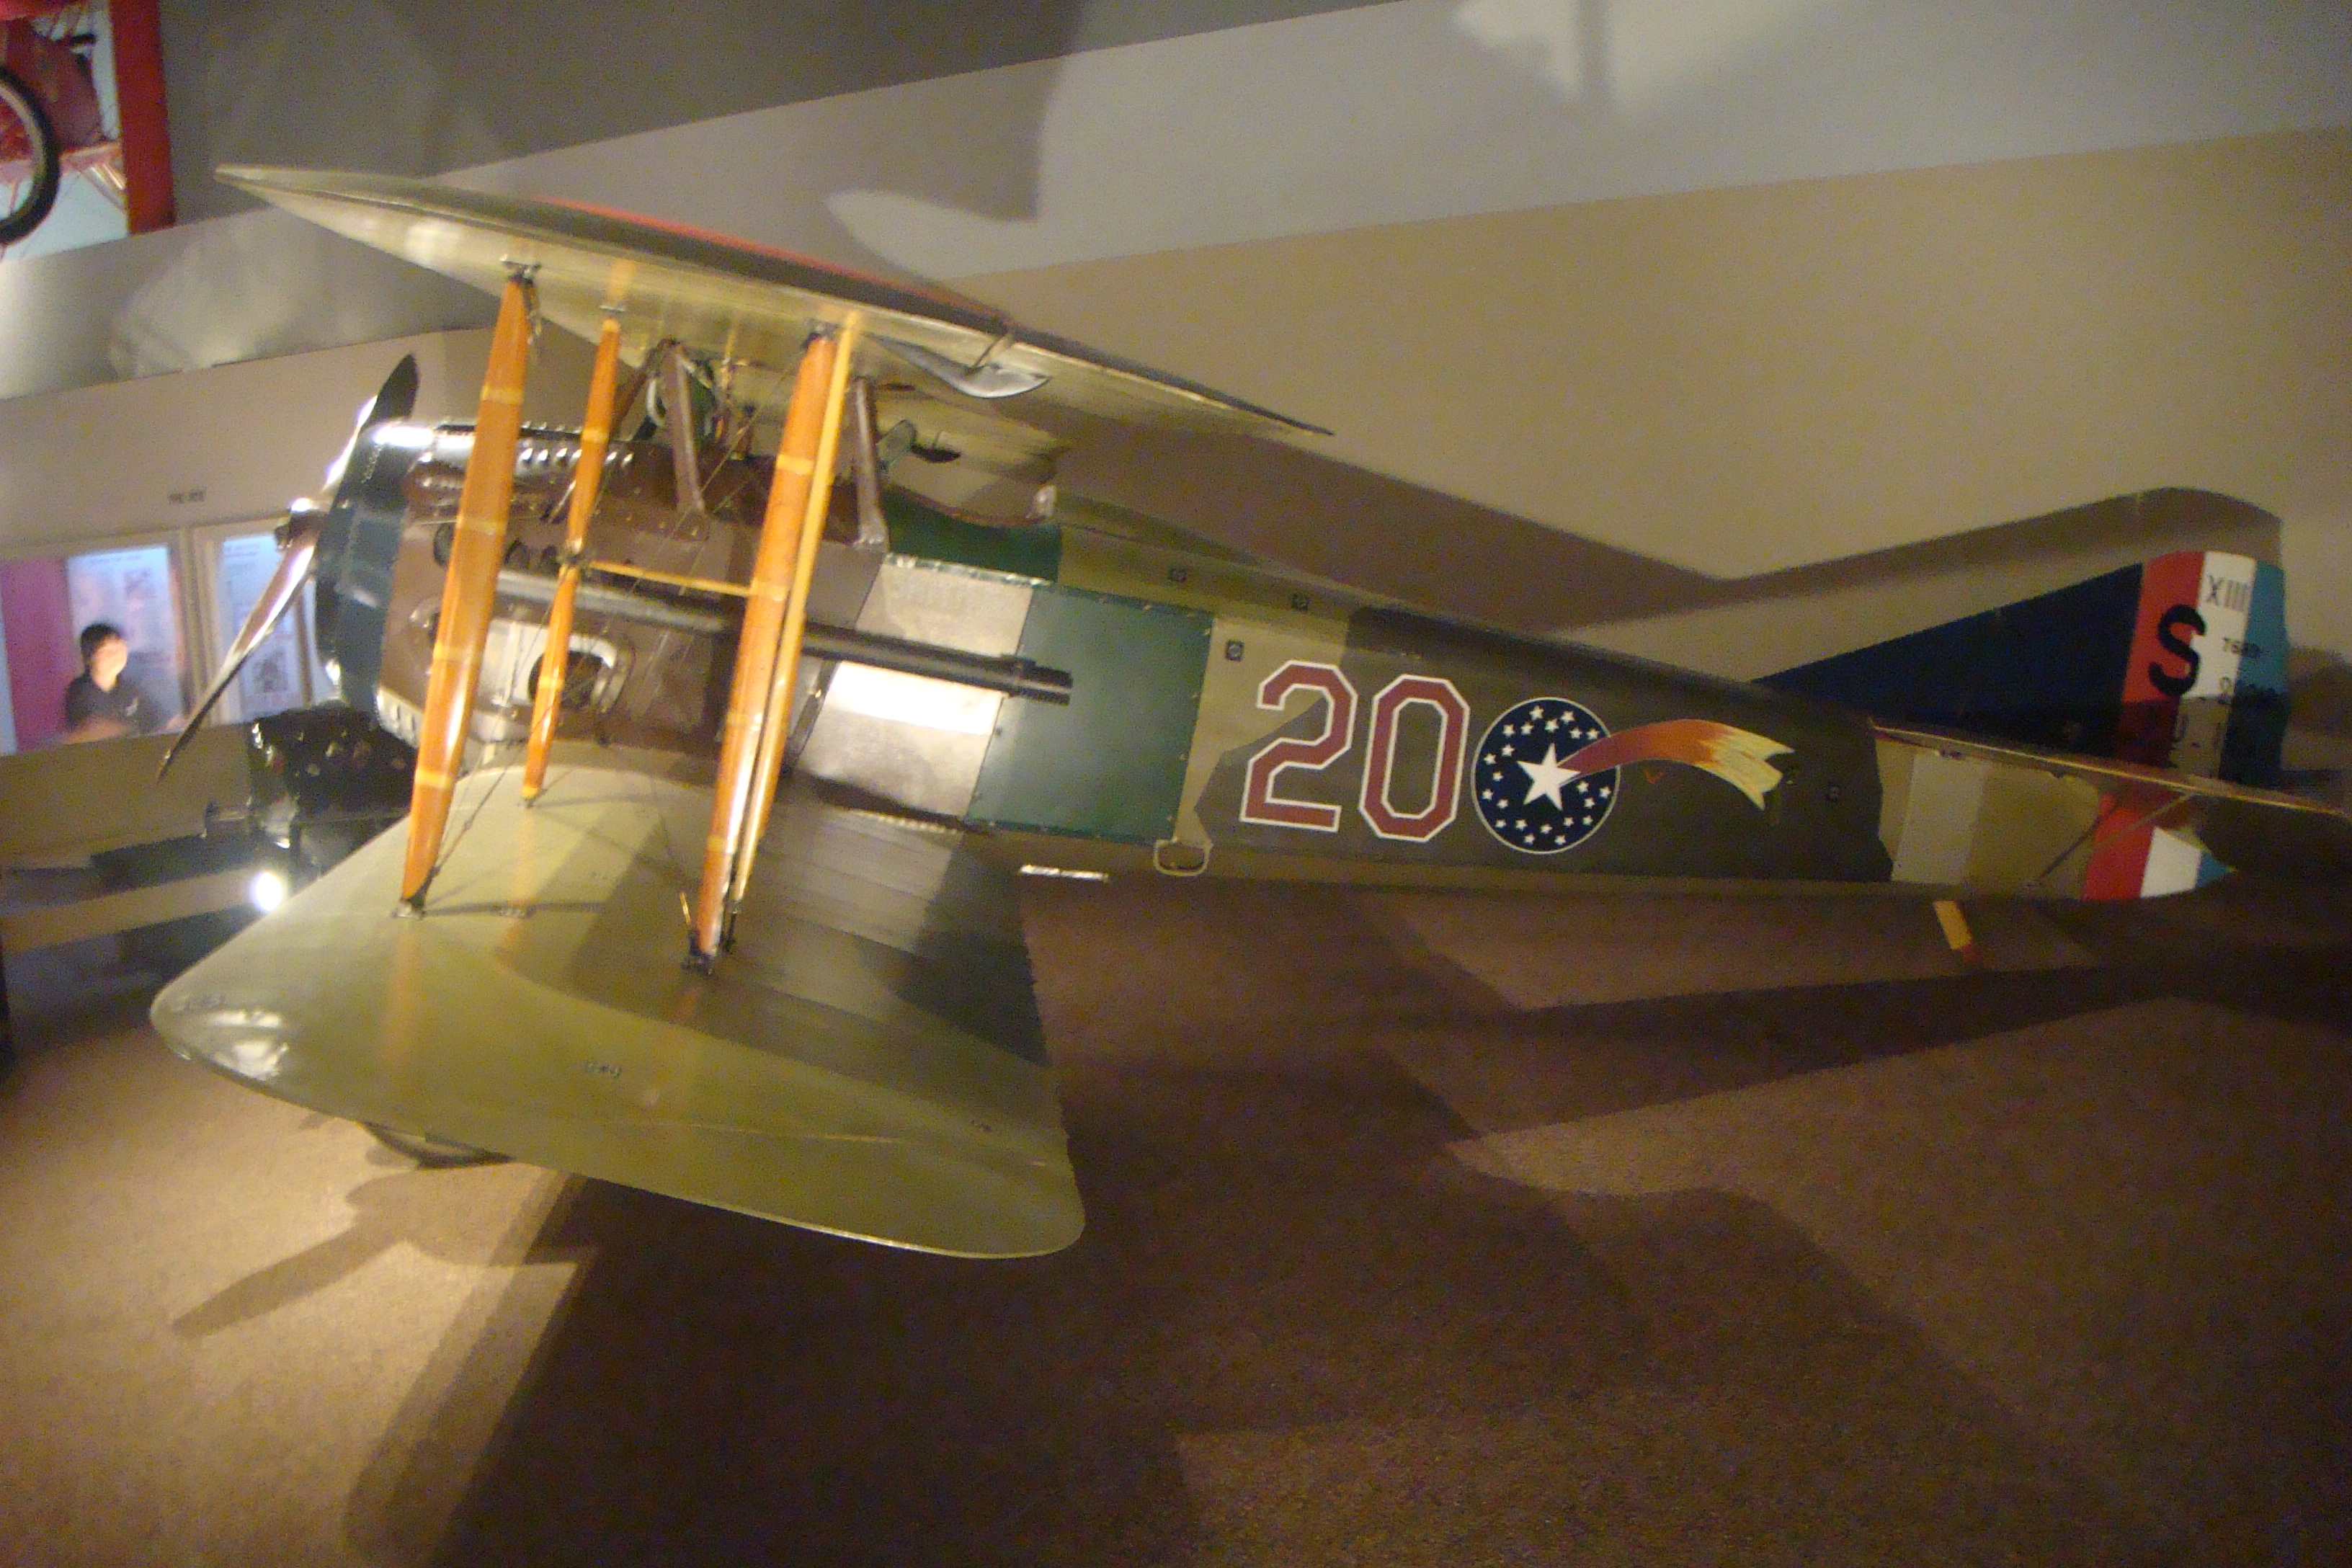 Profile of the Spad XIII in the collection of the National Air and Space Museum, Washington, D.C.